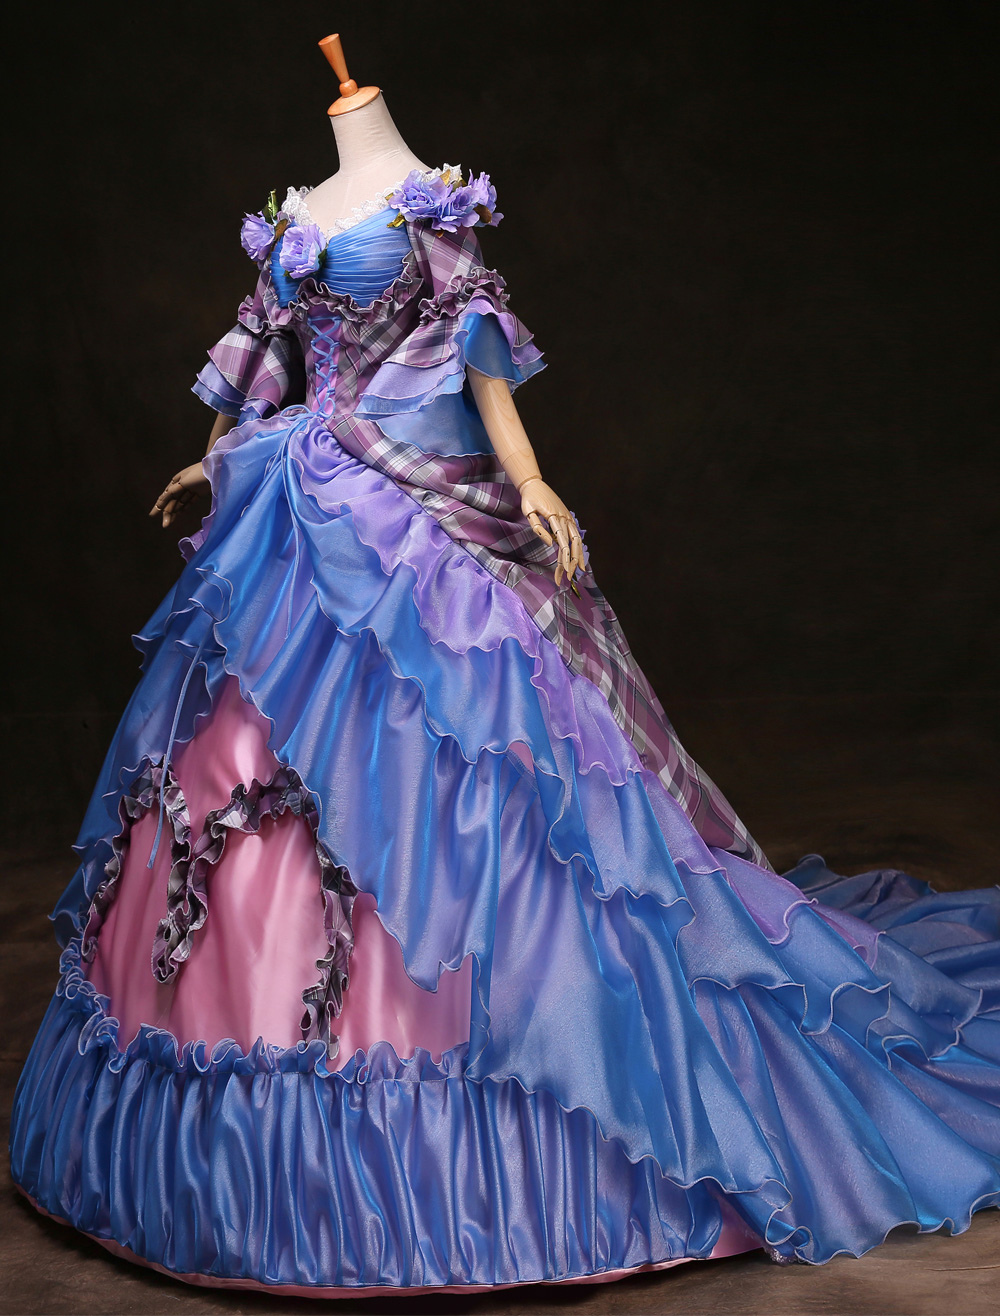 Royal Retro Costume Women's Rococo Ball Gown Blue Plaid Tiered Flowers Ruffle Vintage Princess Costume Halloween